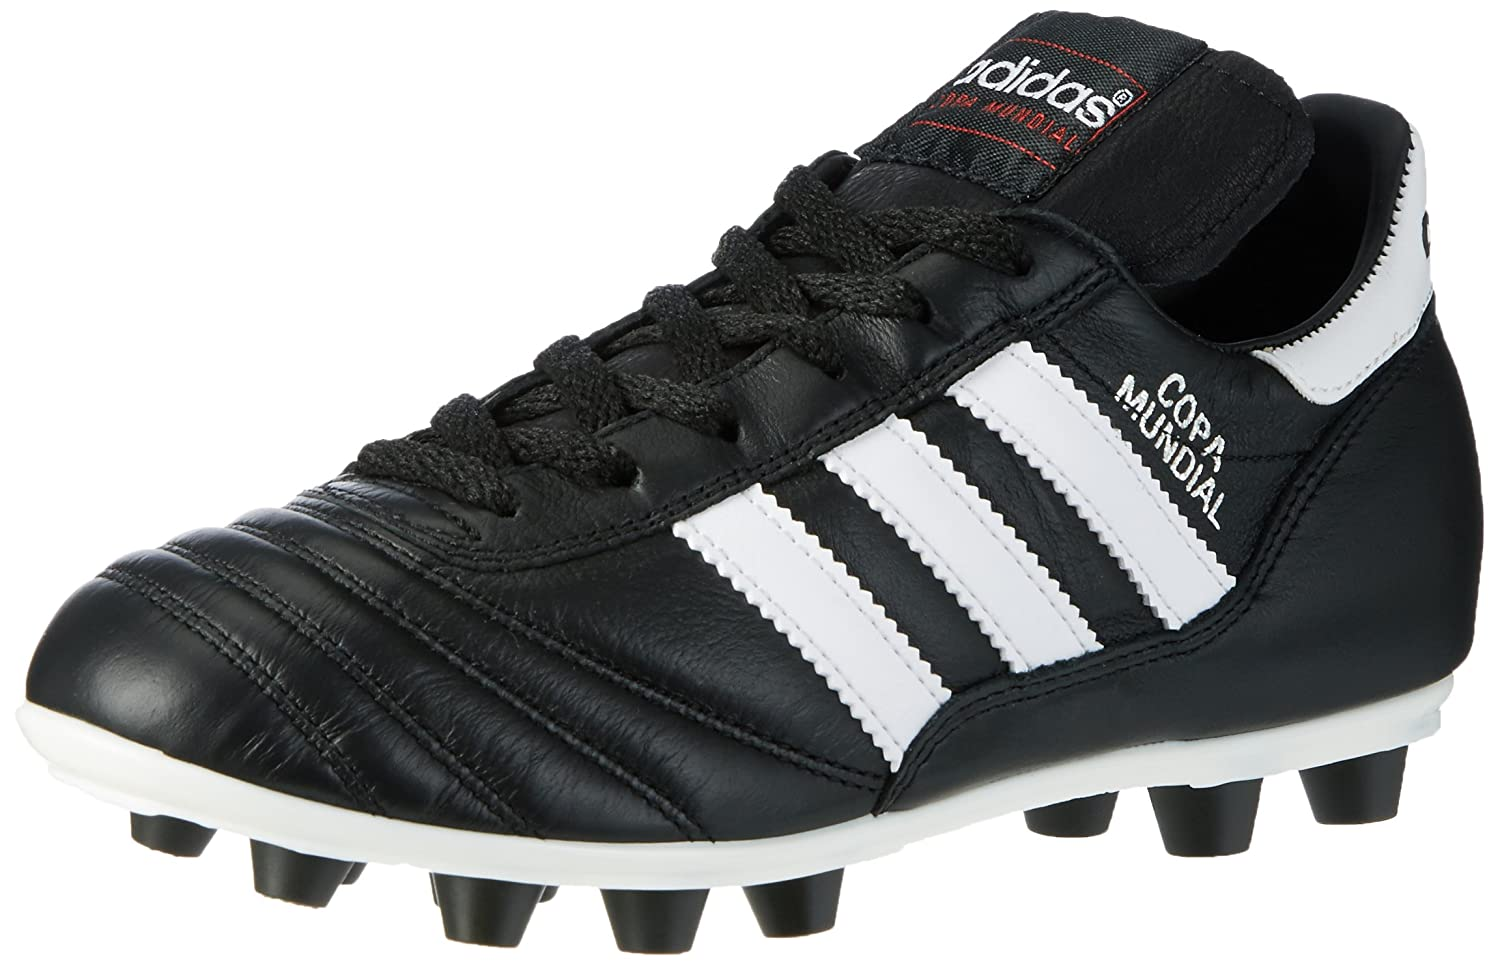 adidas Performance Men's Copa Mundial Soccer Shoe B000OWJJ7O 4 D(M) US|Black/White/Black